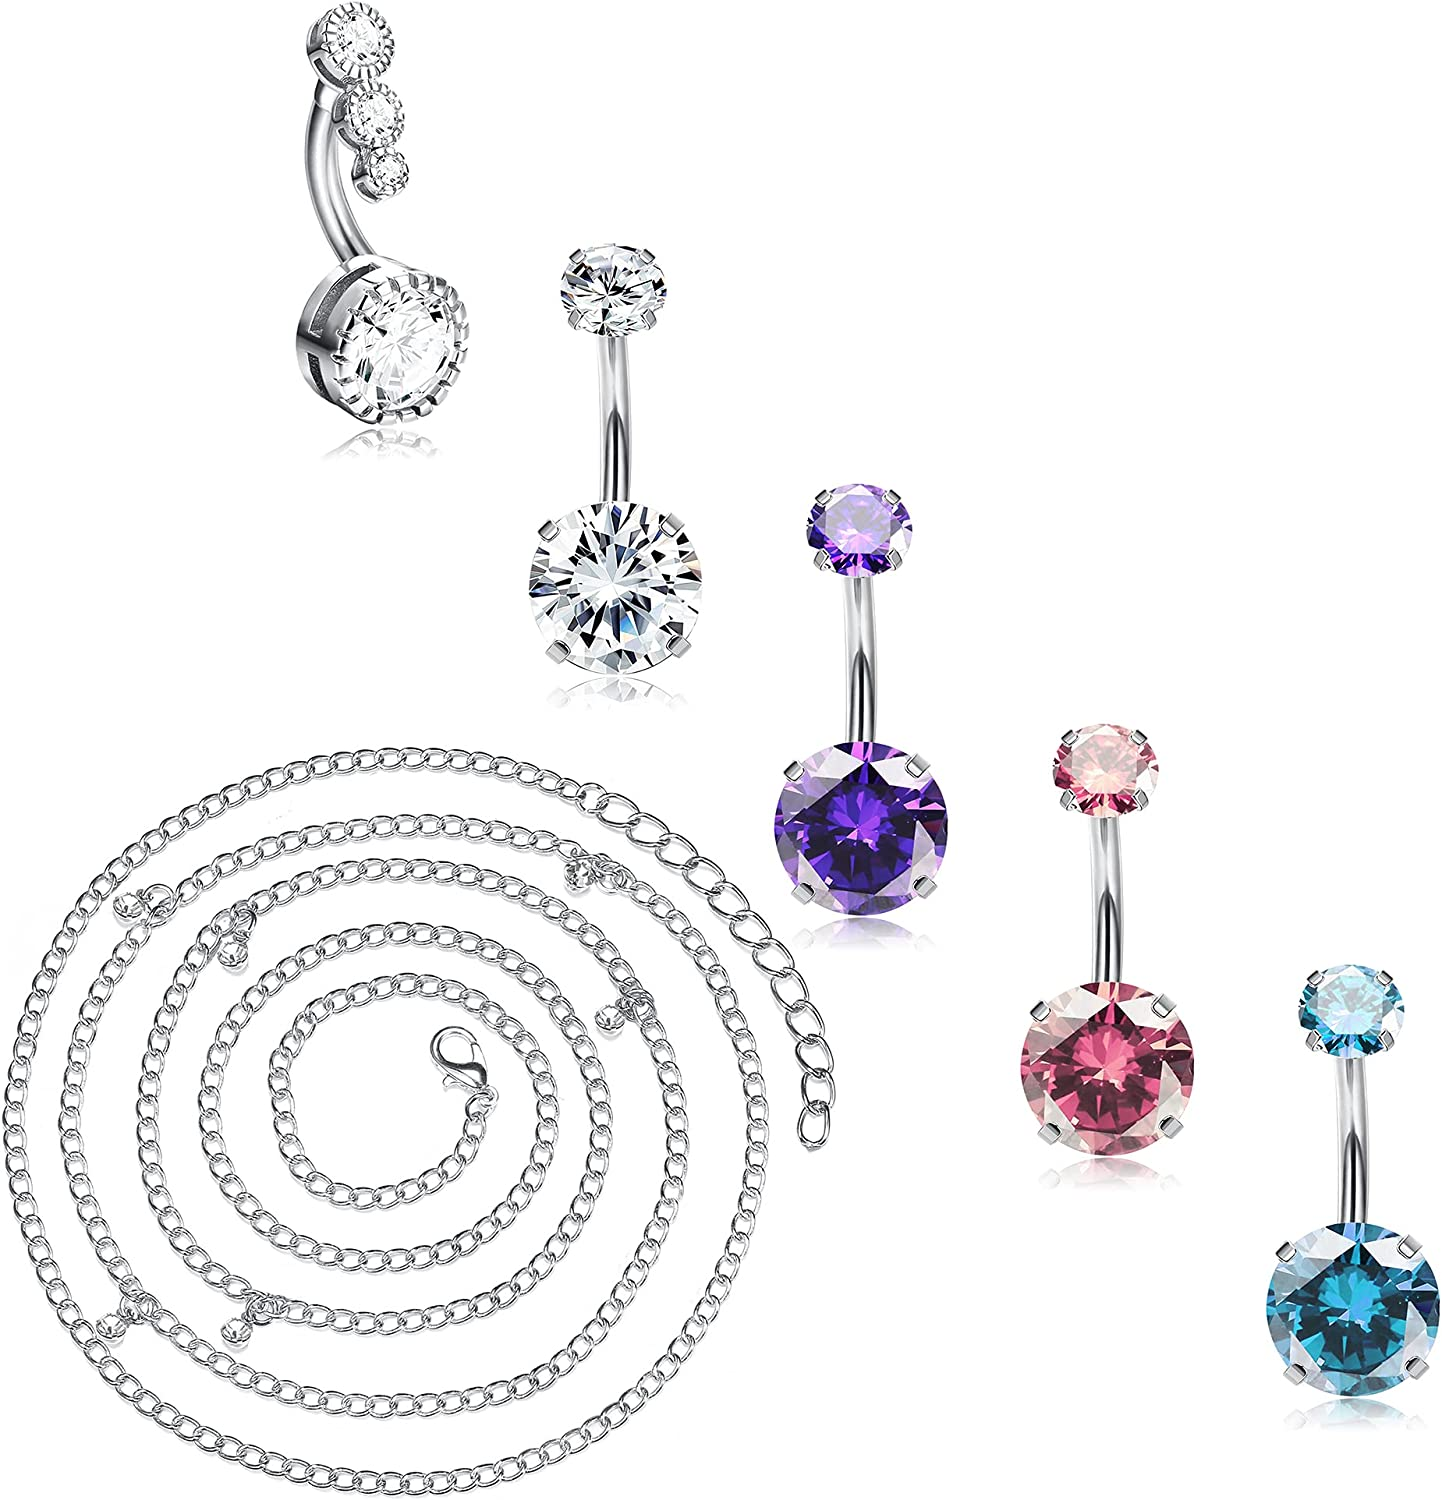 BodyBonita 14G Belly Button Rings with Waist Chain Surgical Stainless Steel Diamond CZ Dangle Belly Rings Cute Navel Rings Dangle Belly Button Piercing Jewelry for Women